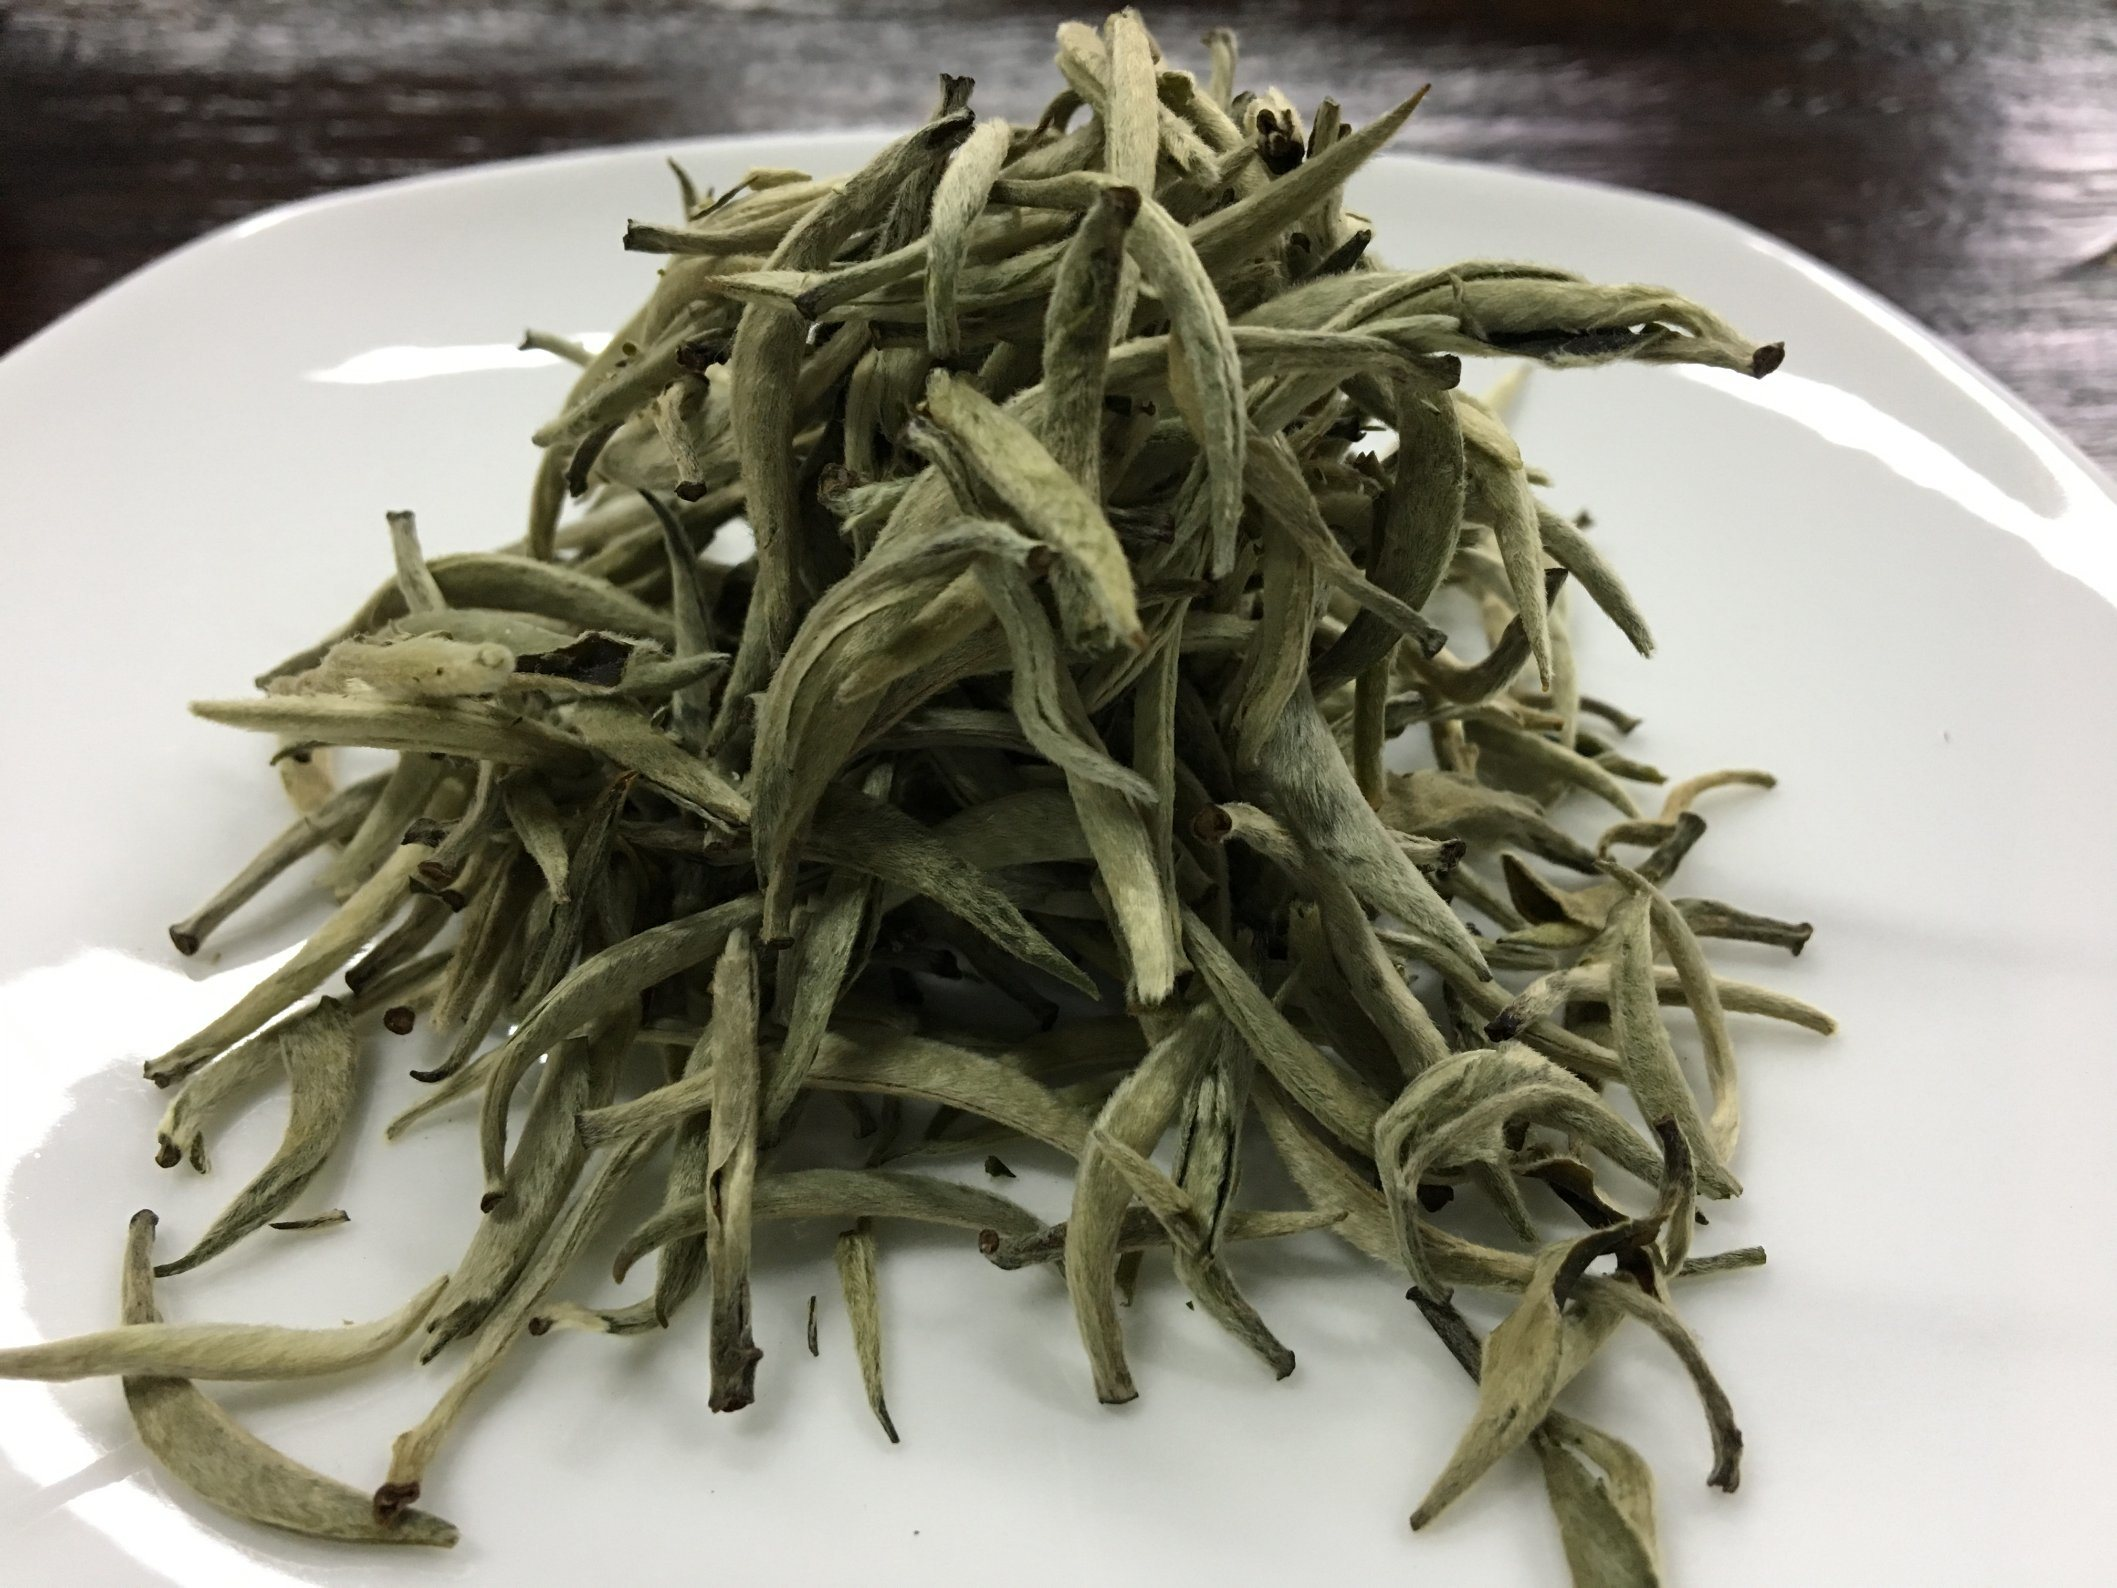 China Tea EU Standard Bai Hao Silver Needle Chinese White Tea